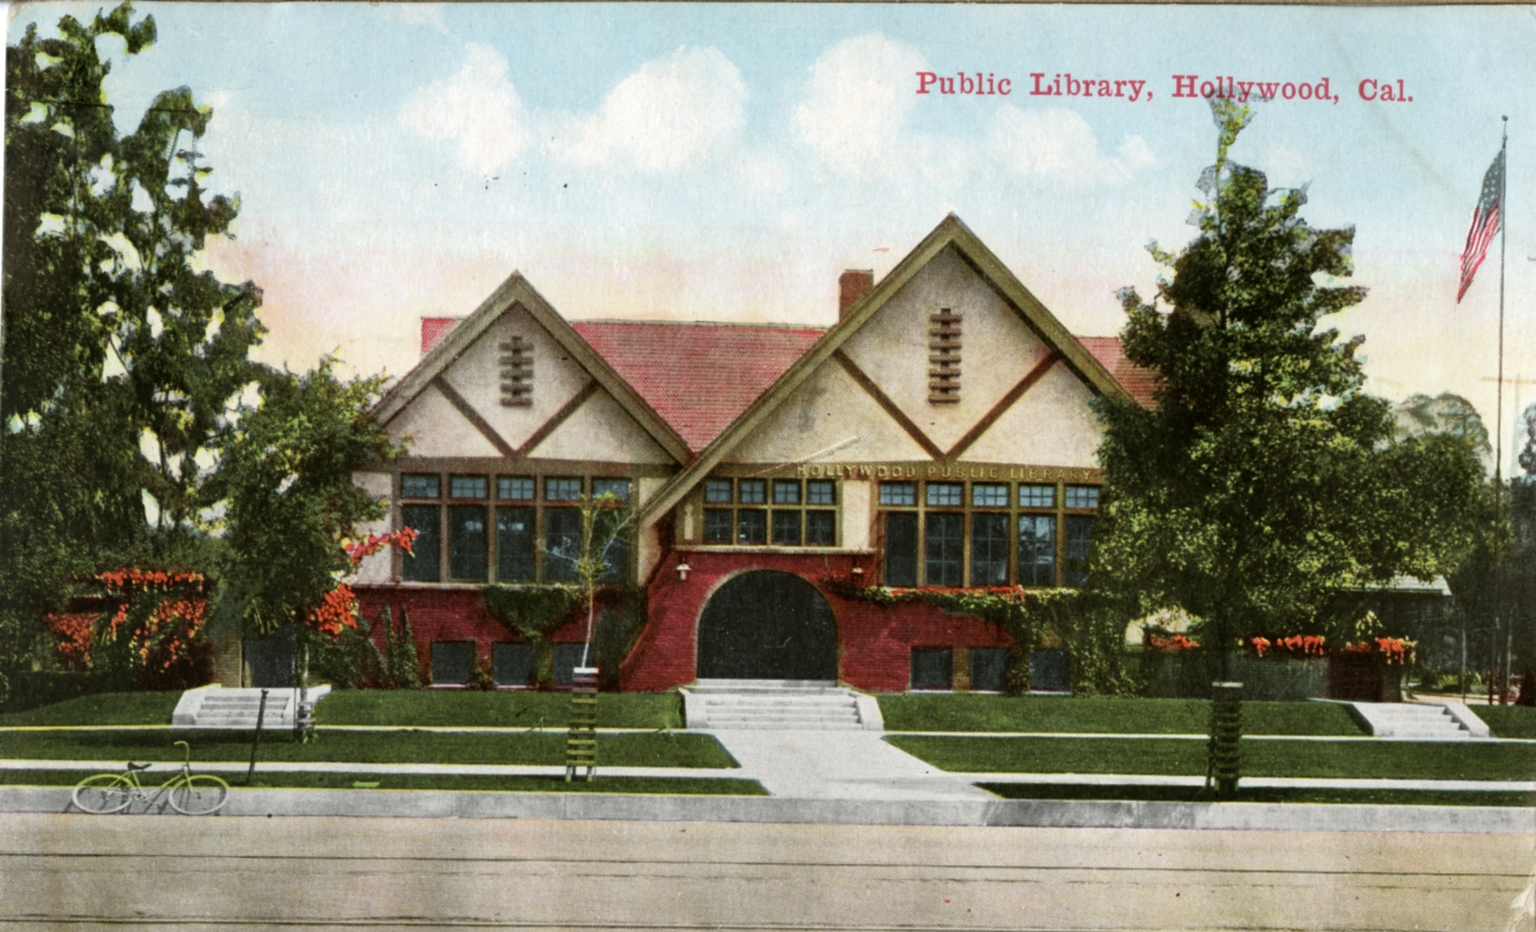 Hollywood Public Library